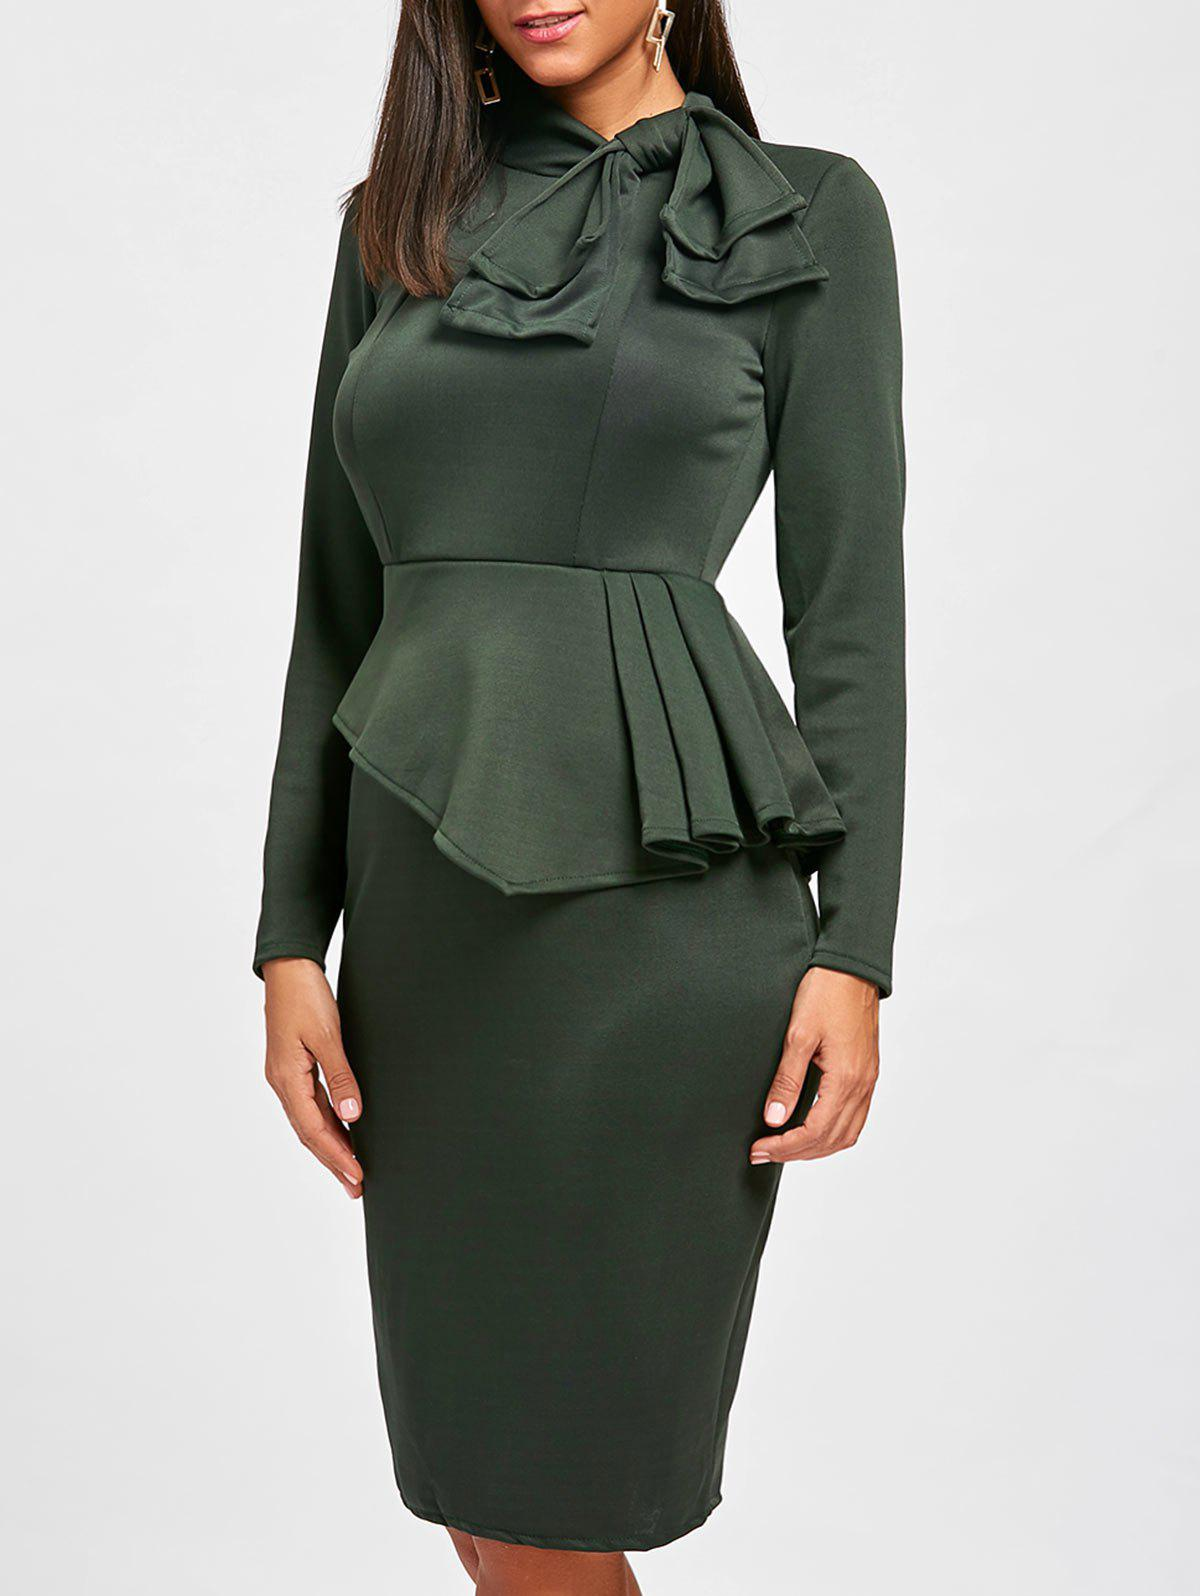 Bowknot Long Sleeve Peplum Bodycon Dress - Vert L